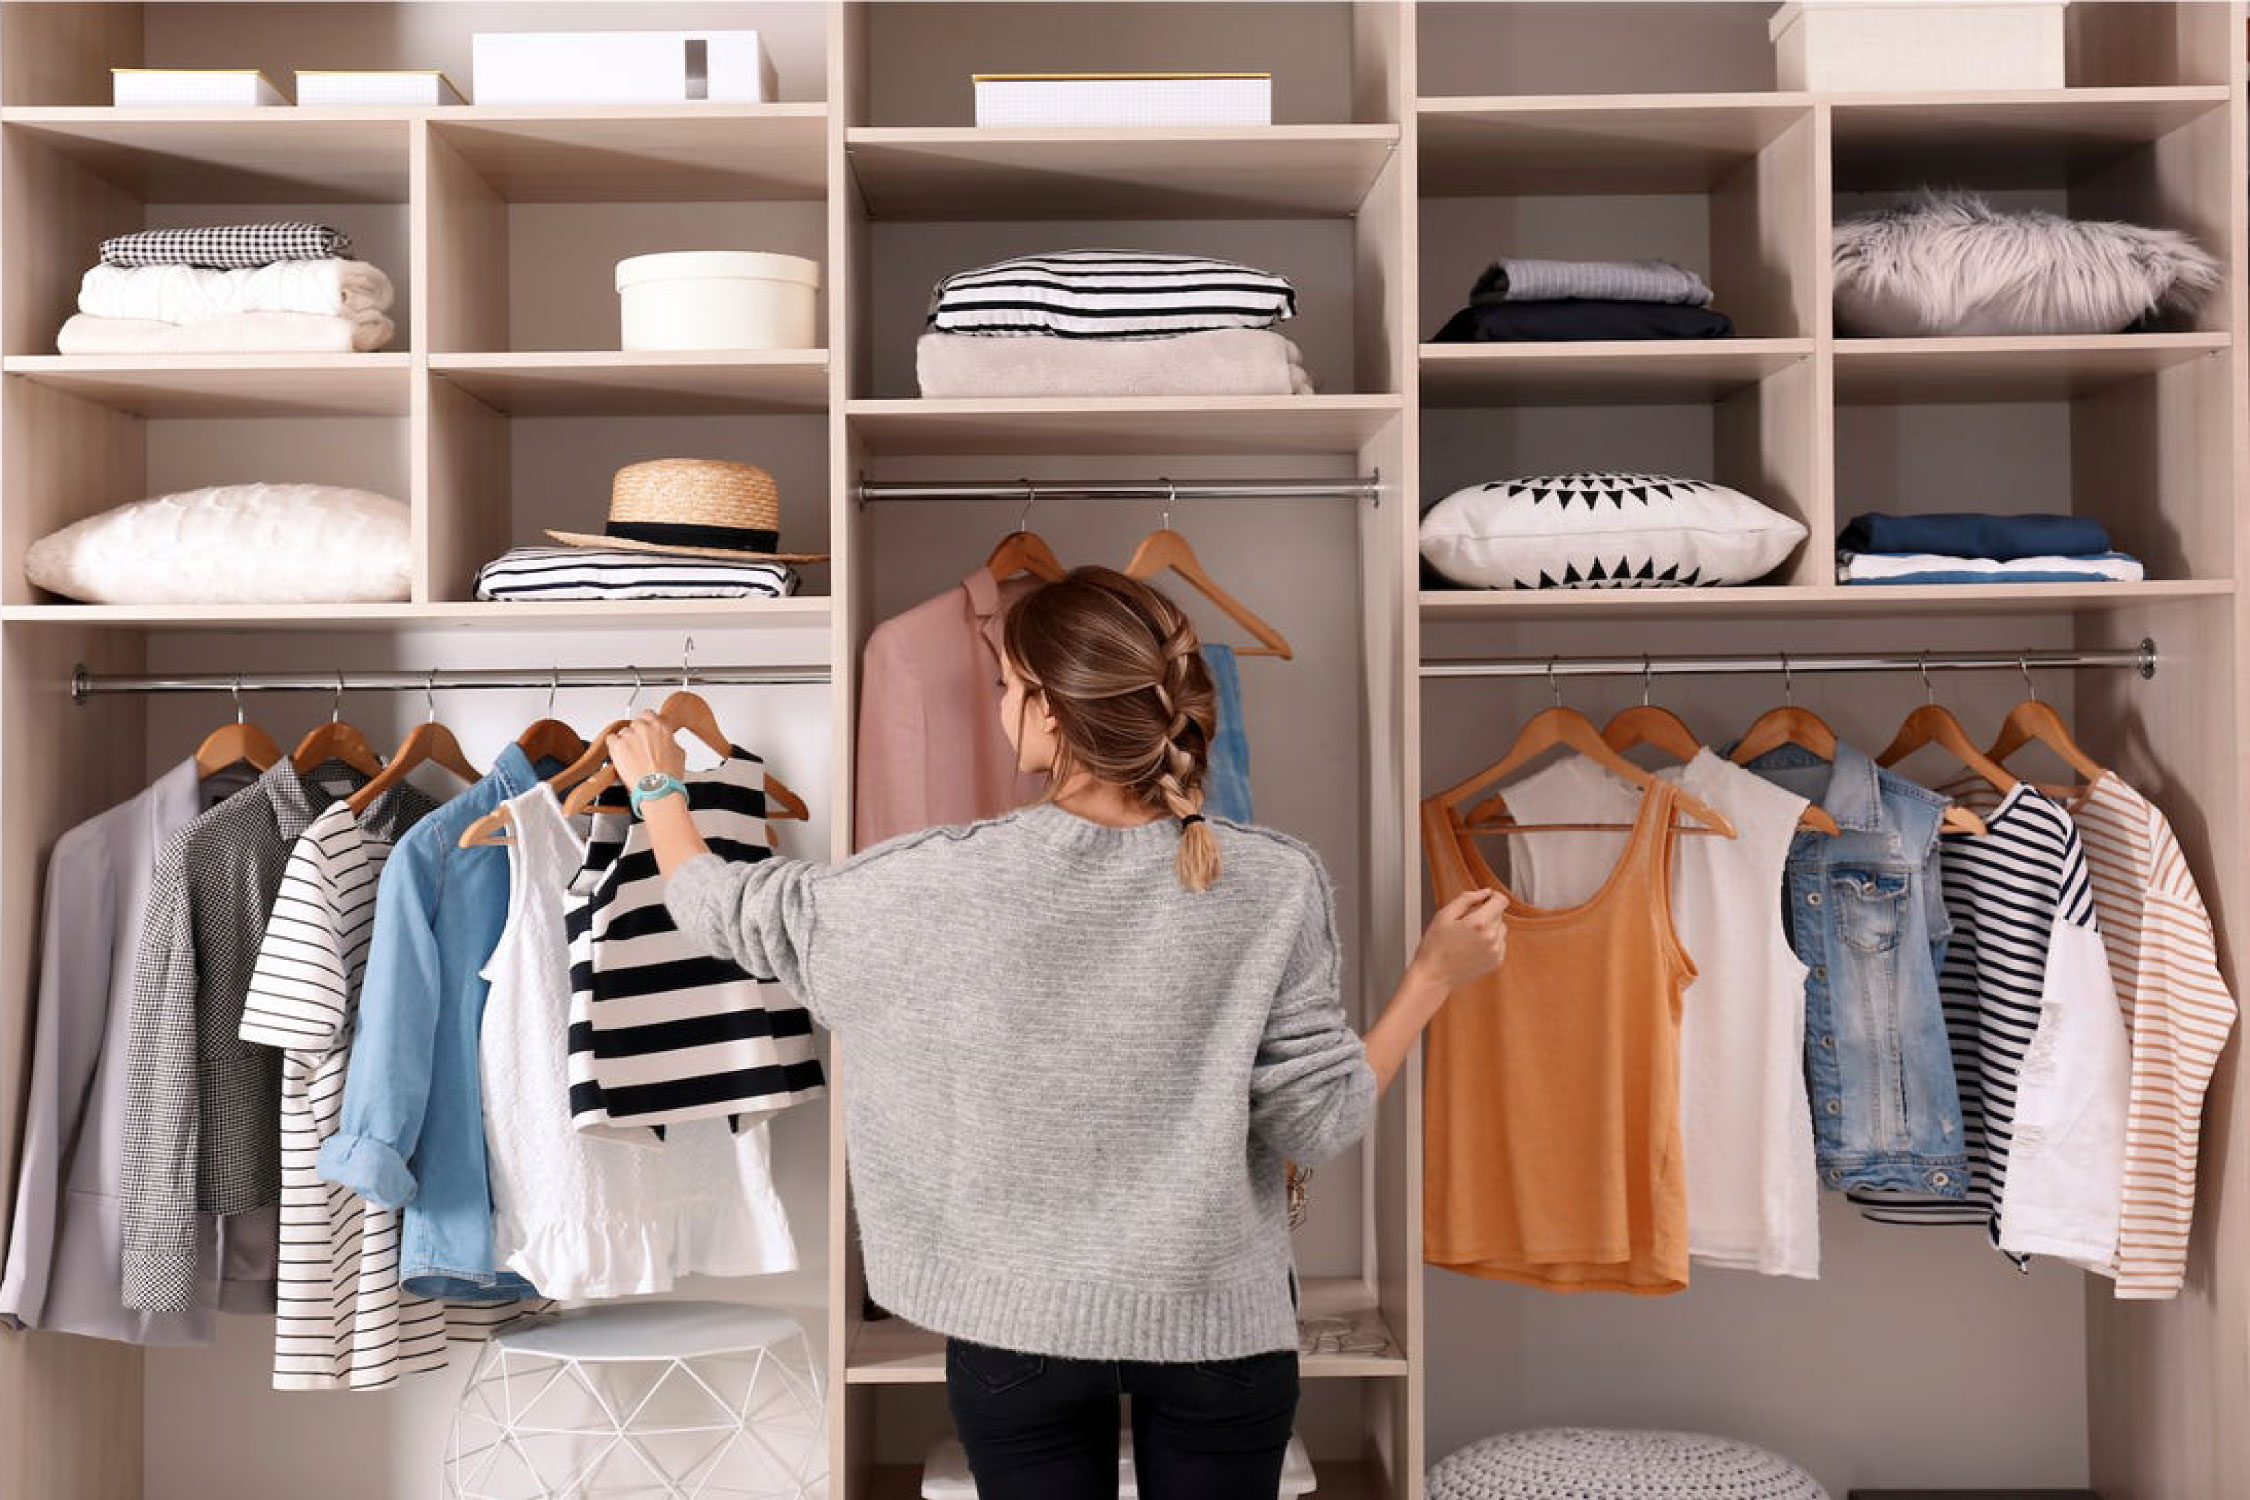 How to organize your closet??